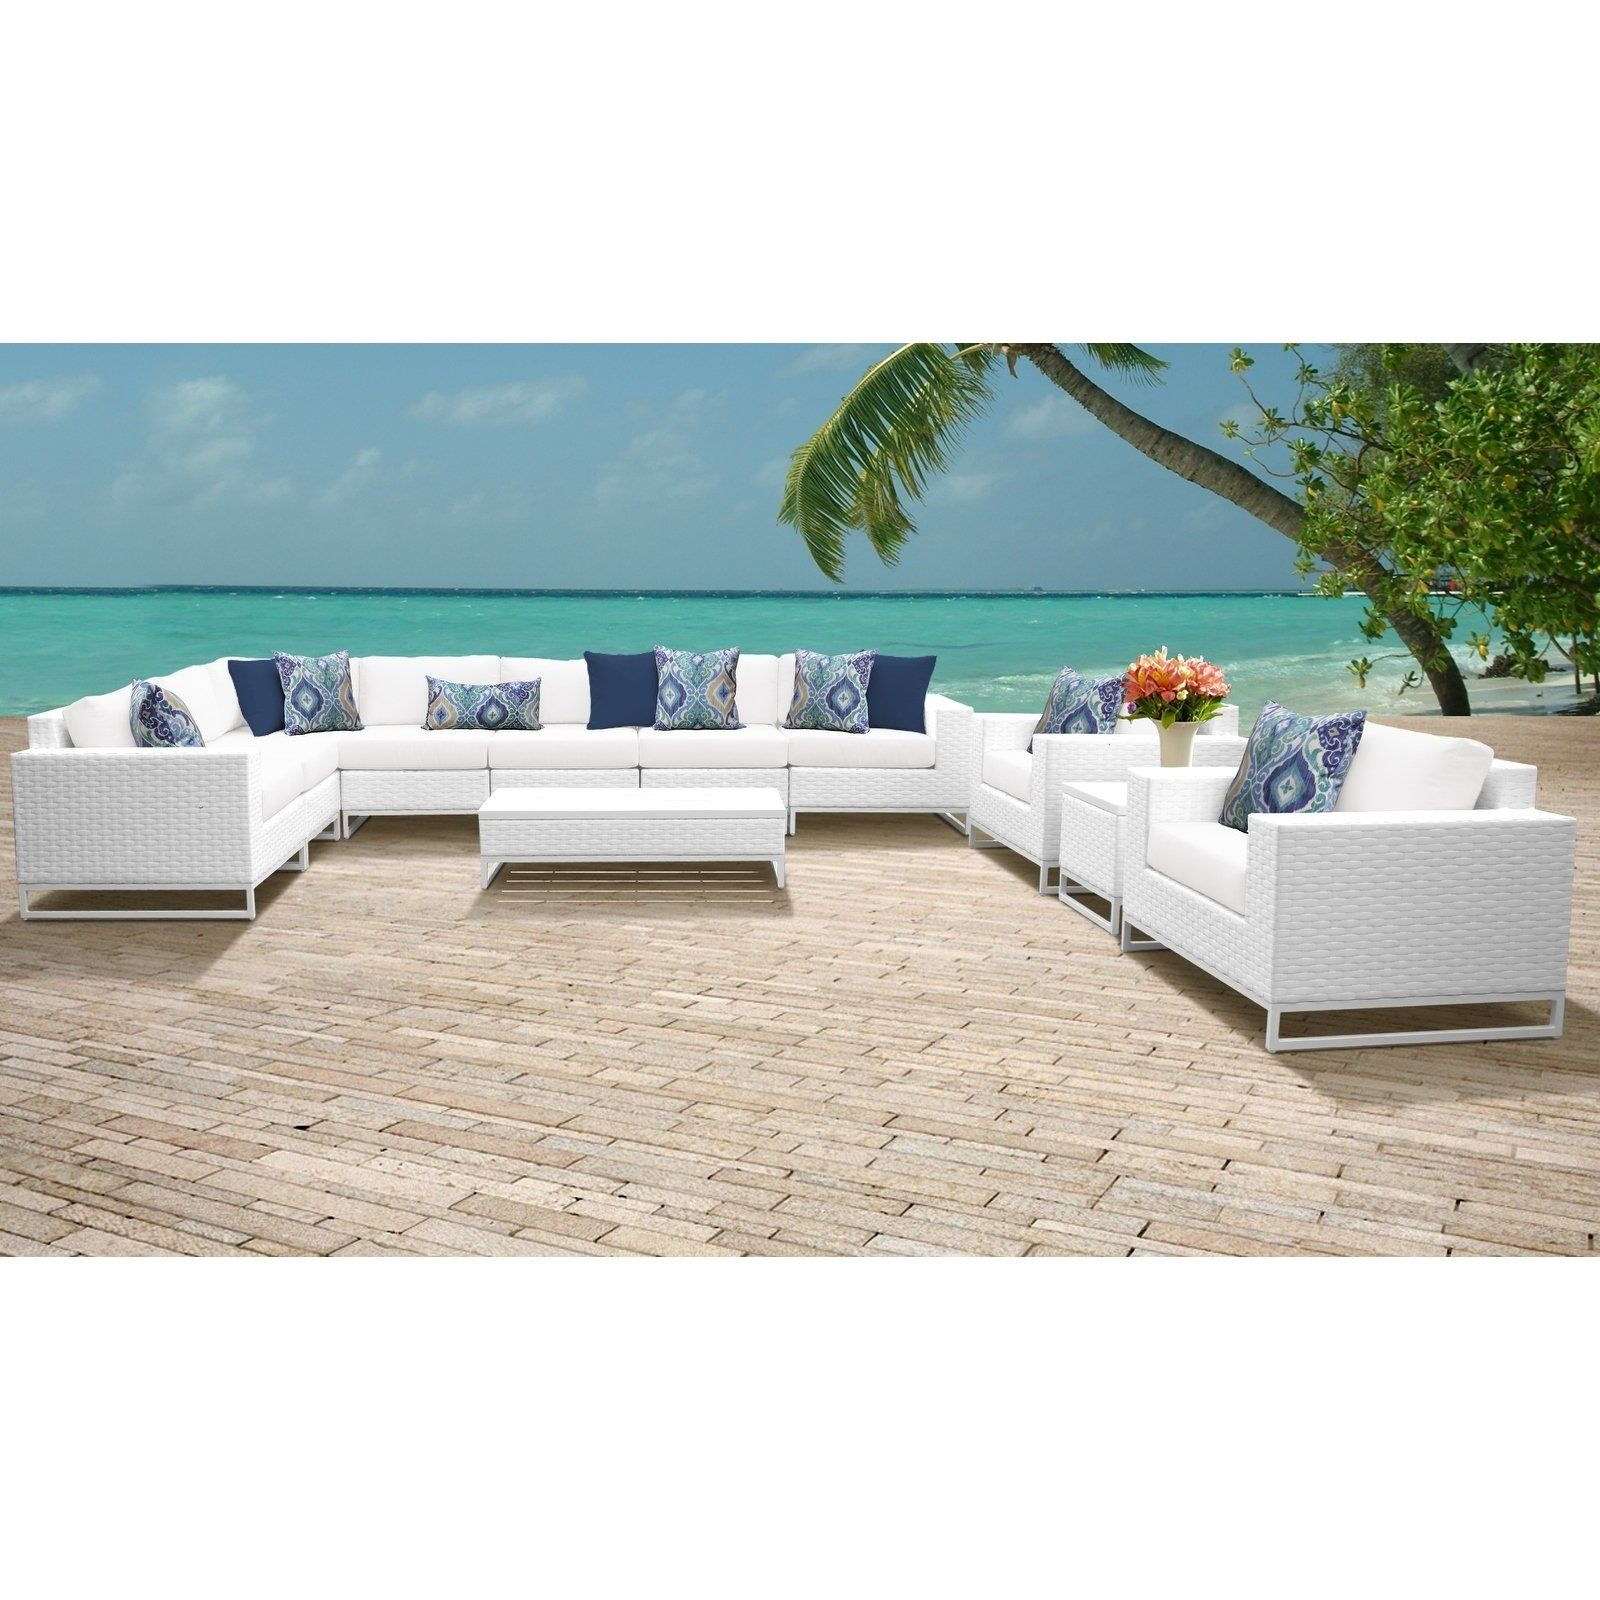 Miami 11 Piece Outdoor Wicker Patio Furniture Set 11a White with regard to proportions 1600 X 1600